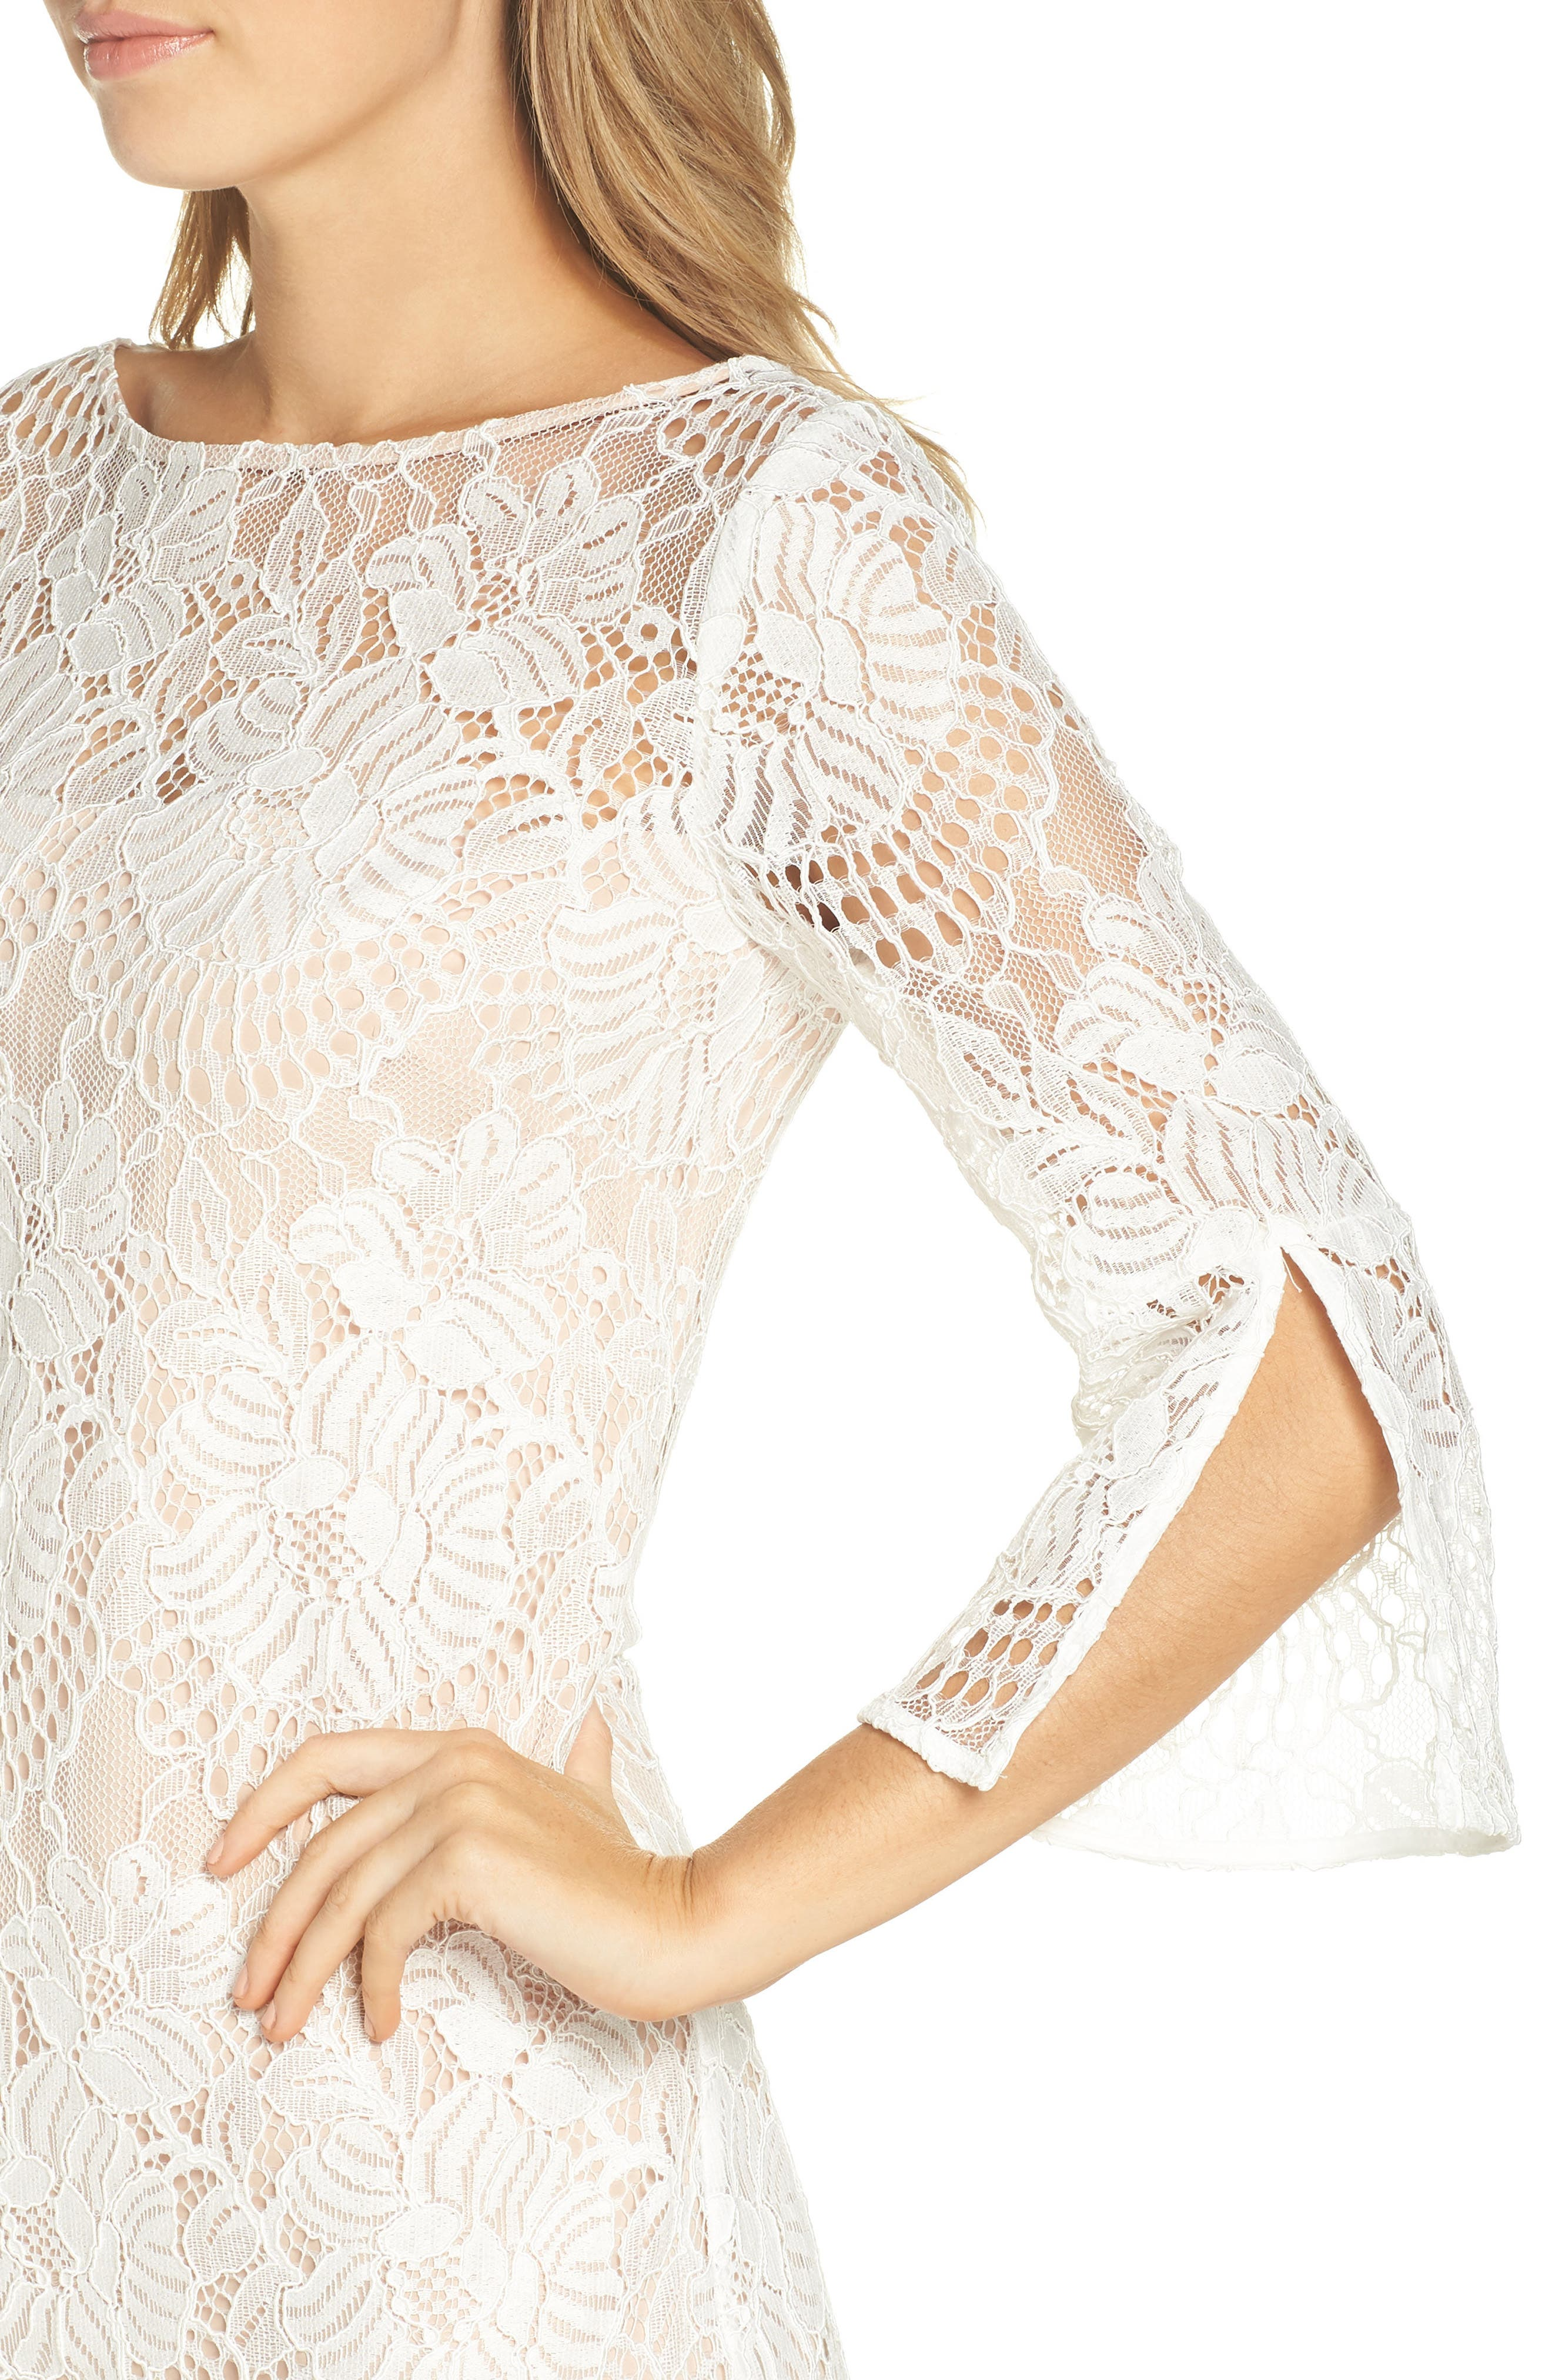 VINCE CAMUTO,                             Lace Shift Dress,                             Alternate thumbnail 4, color,                             IVORY